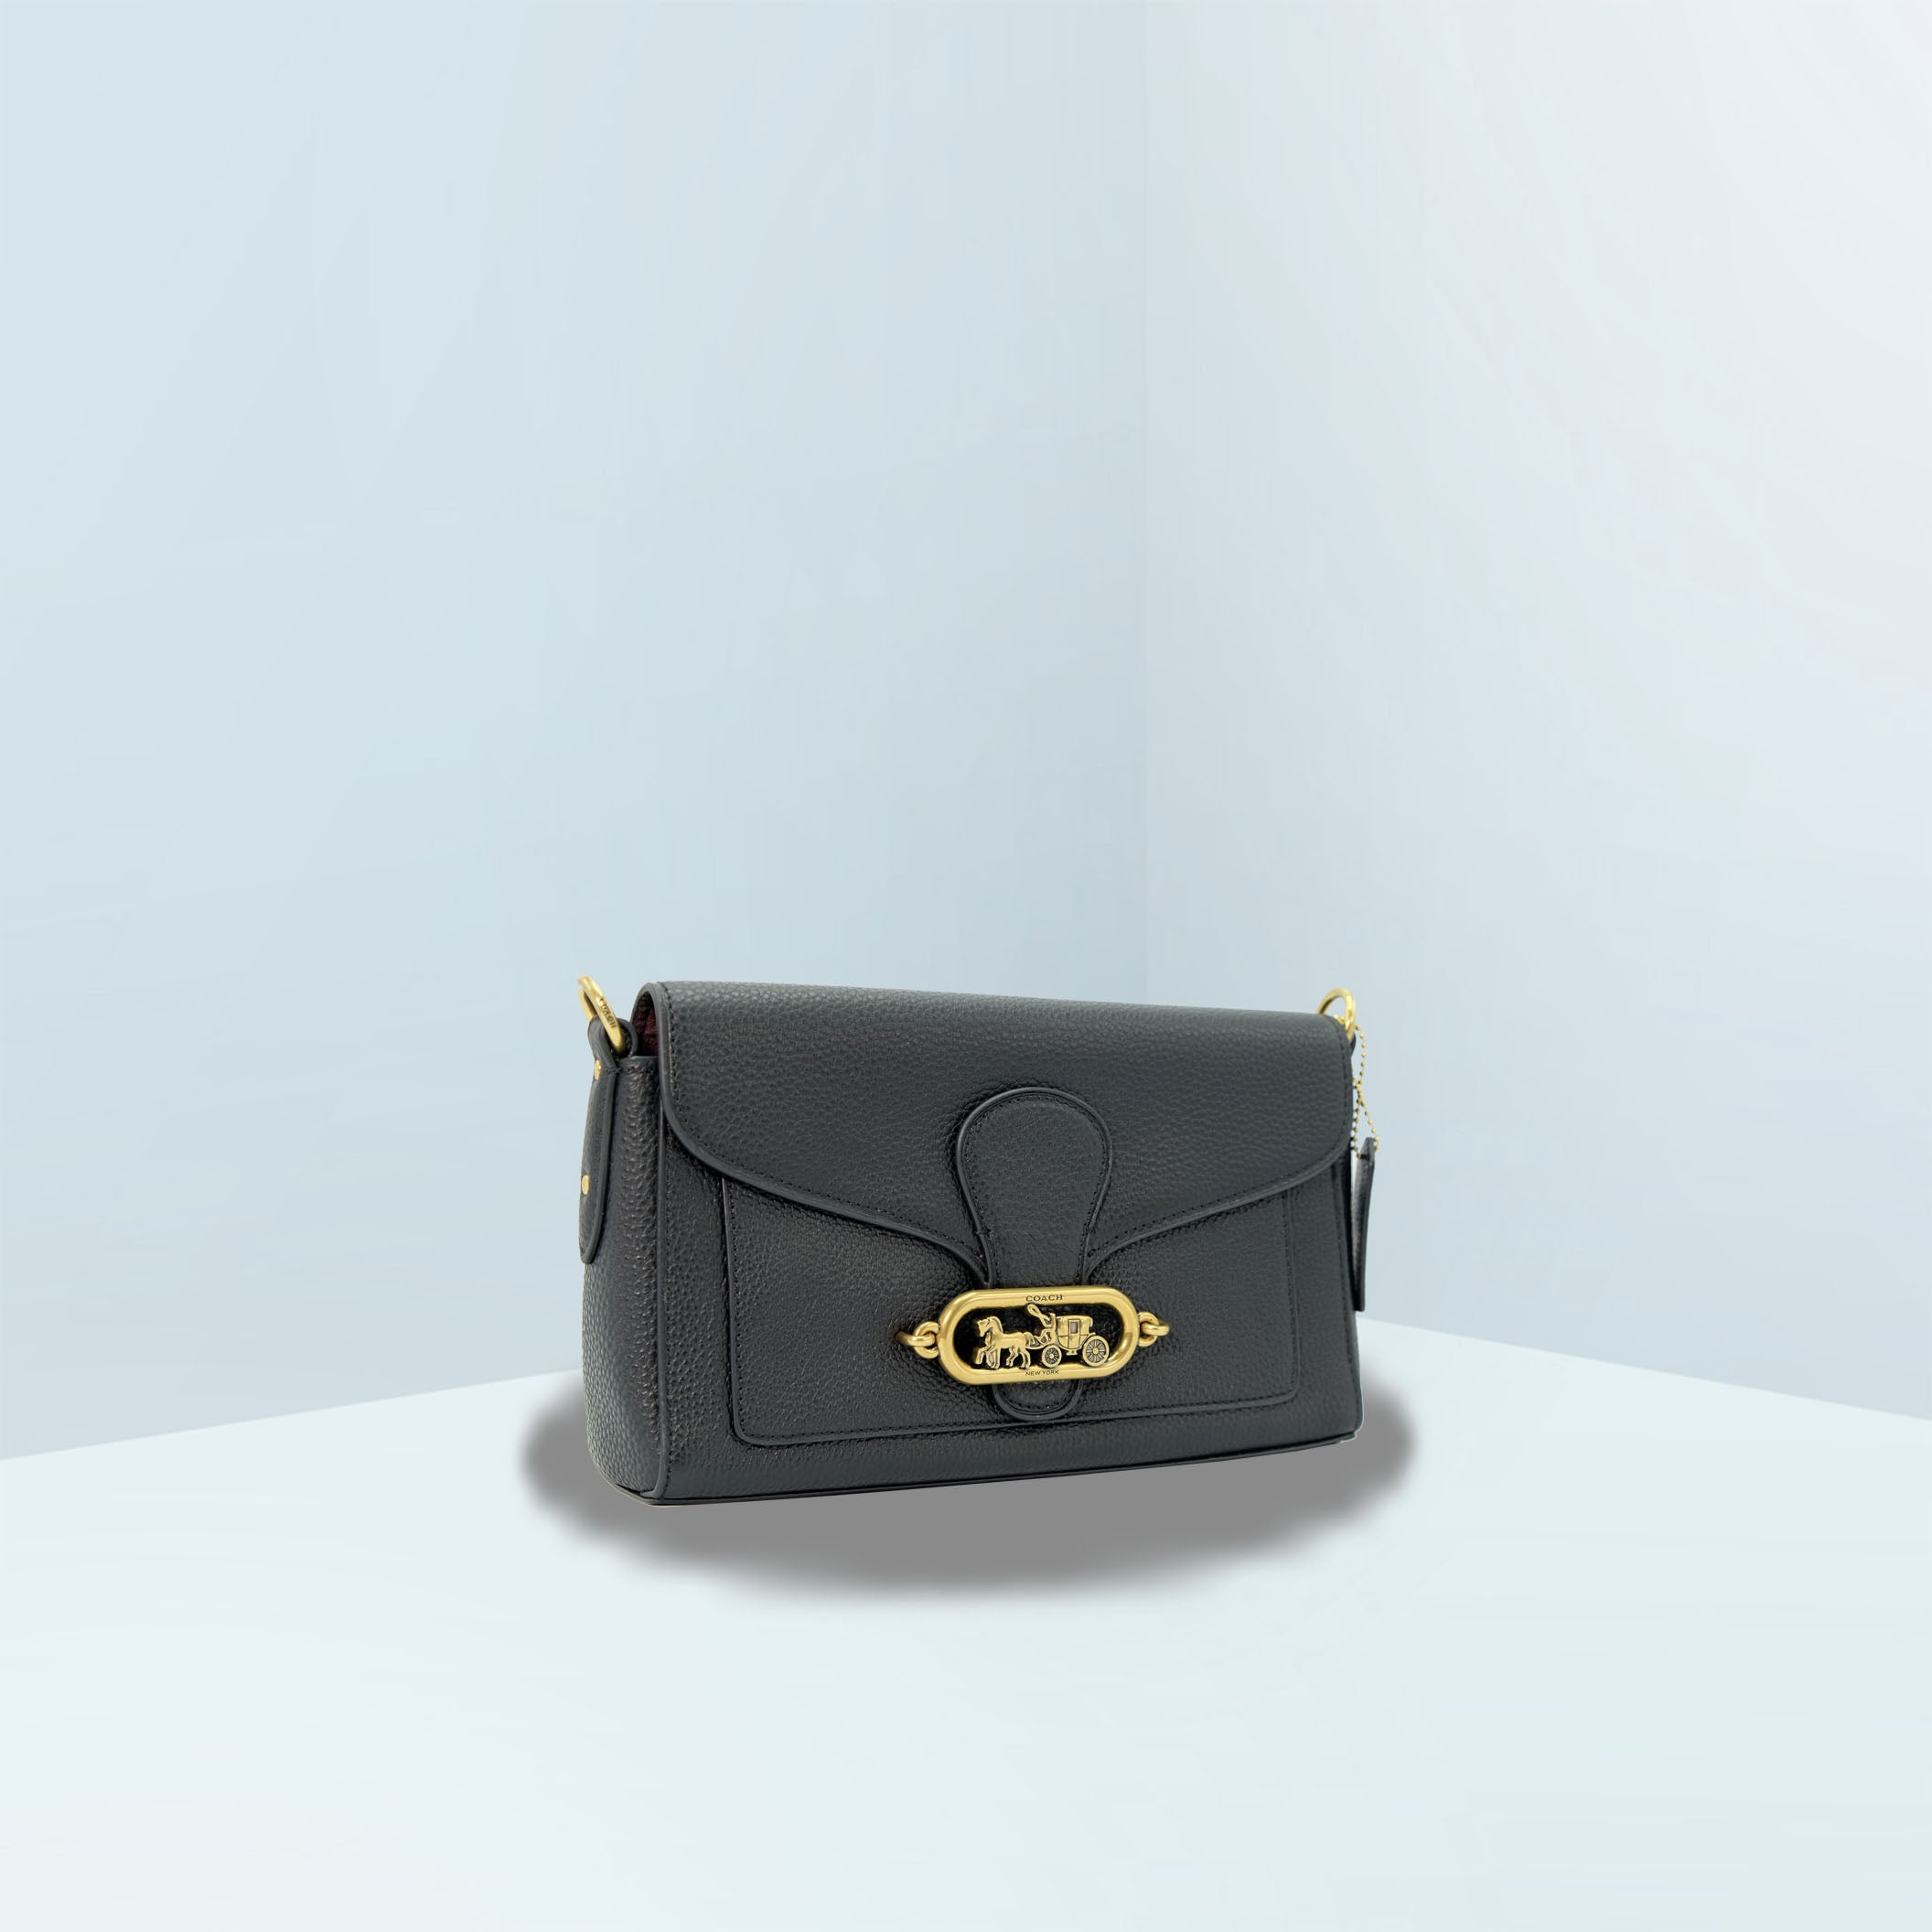 Jade Small Messenger Crossbody Bag